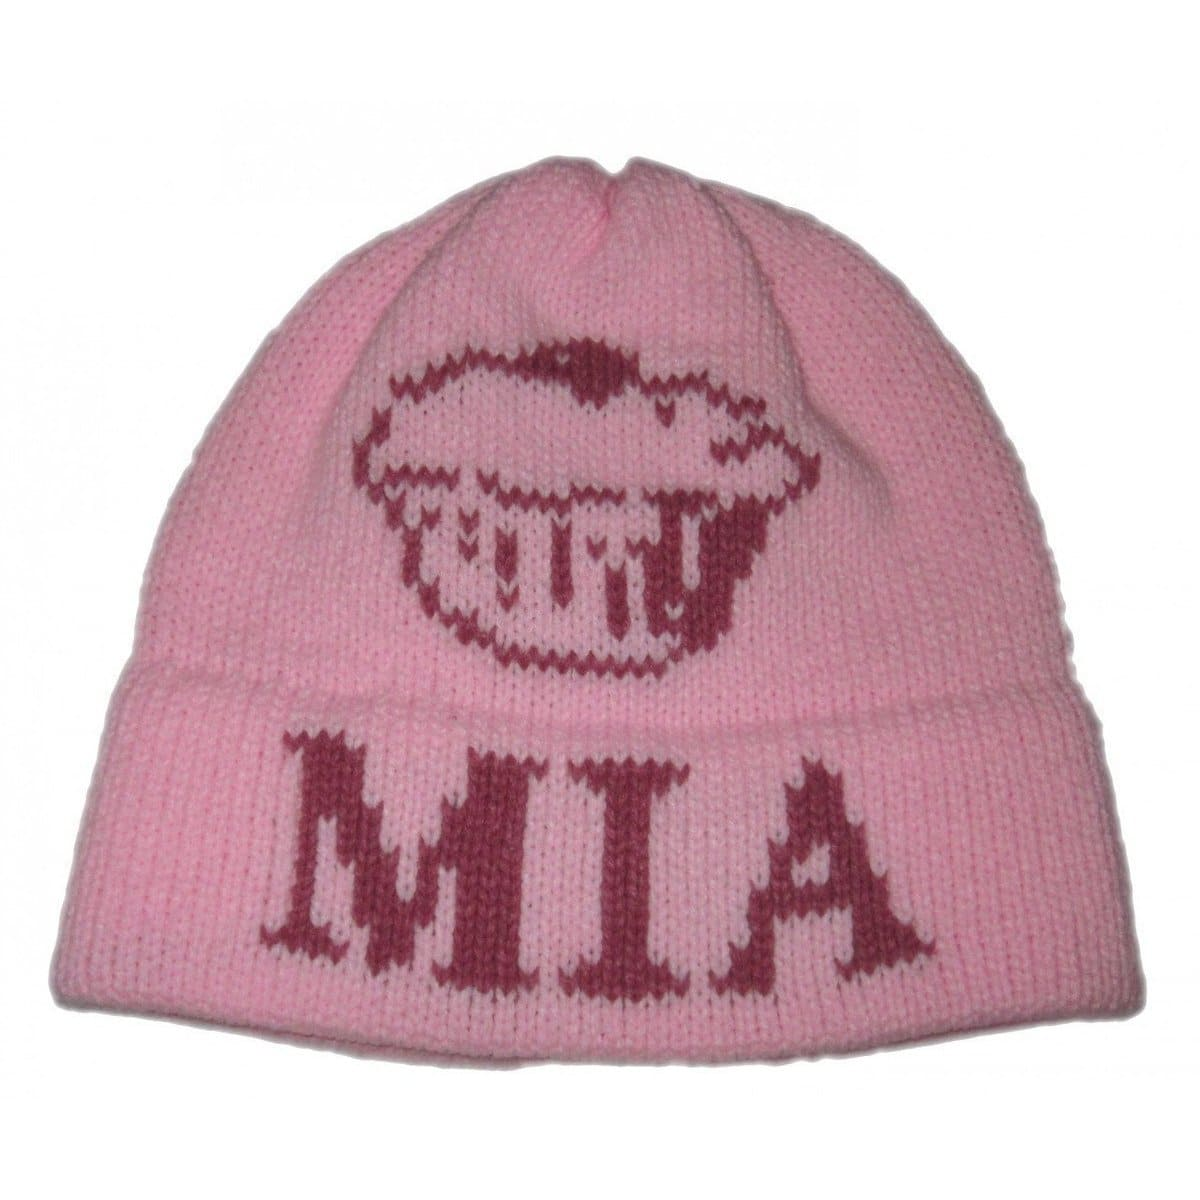 Cupcake Personalized Knit Hat-Hats-Jack and Jill Boutique